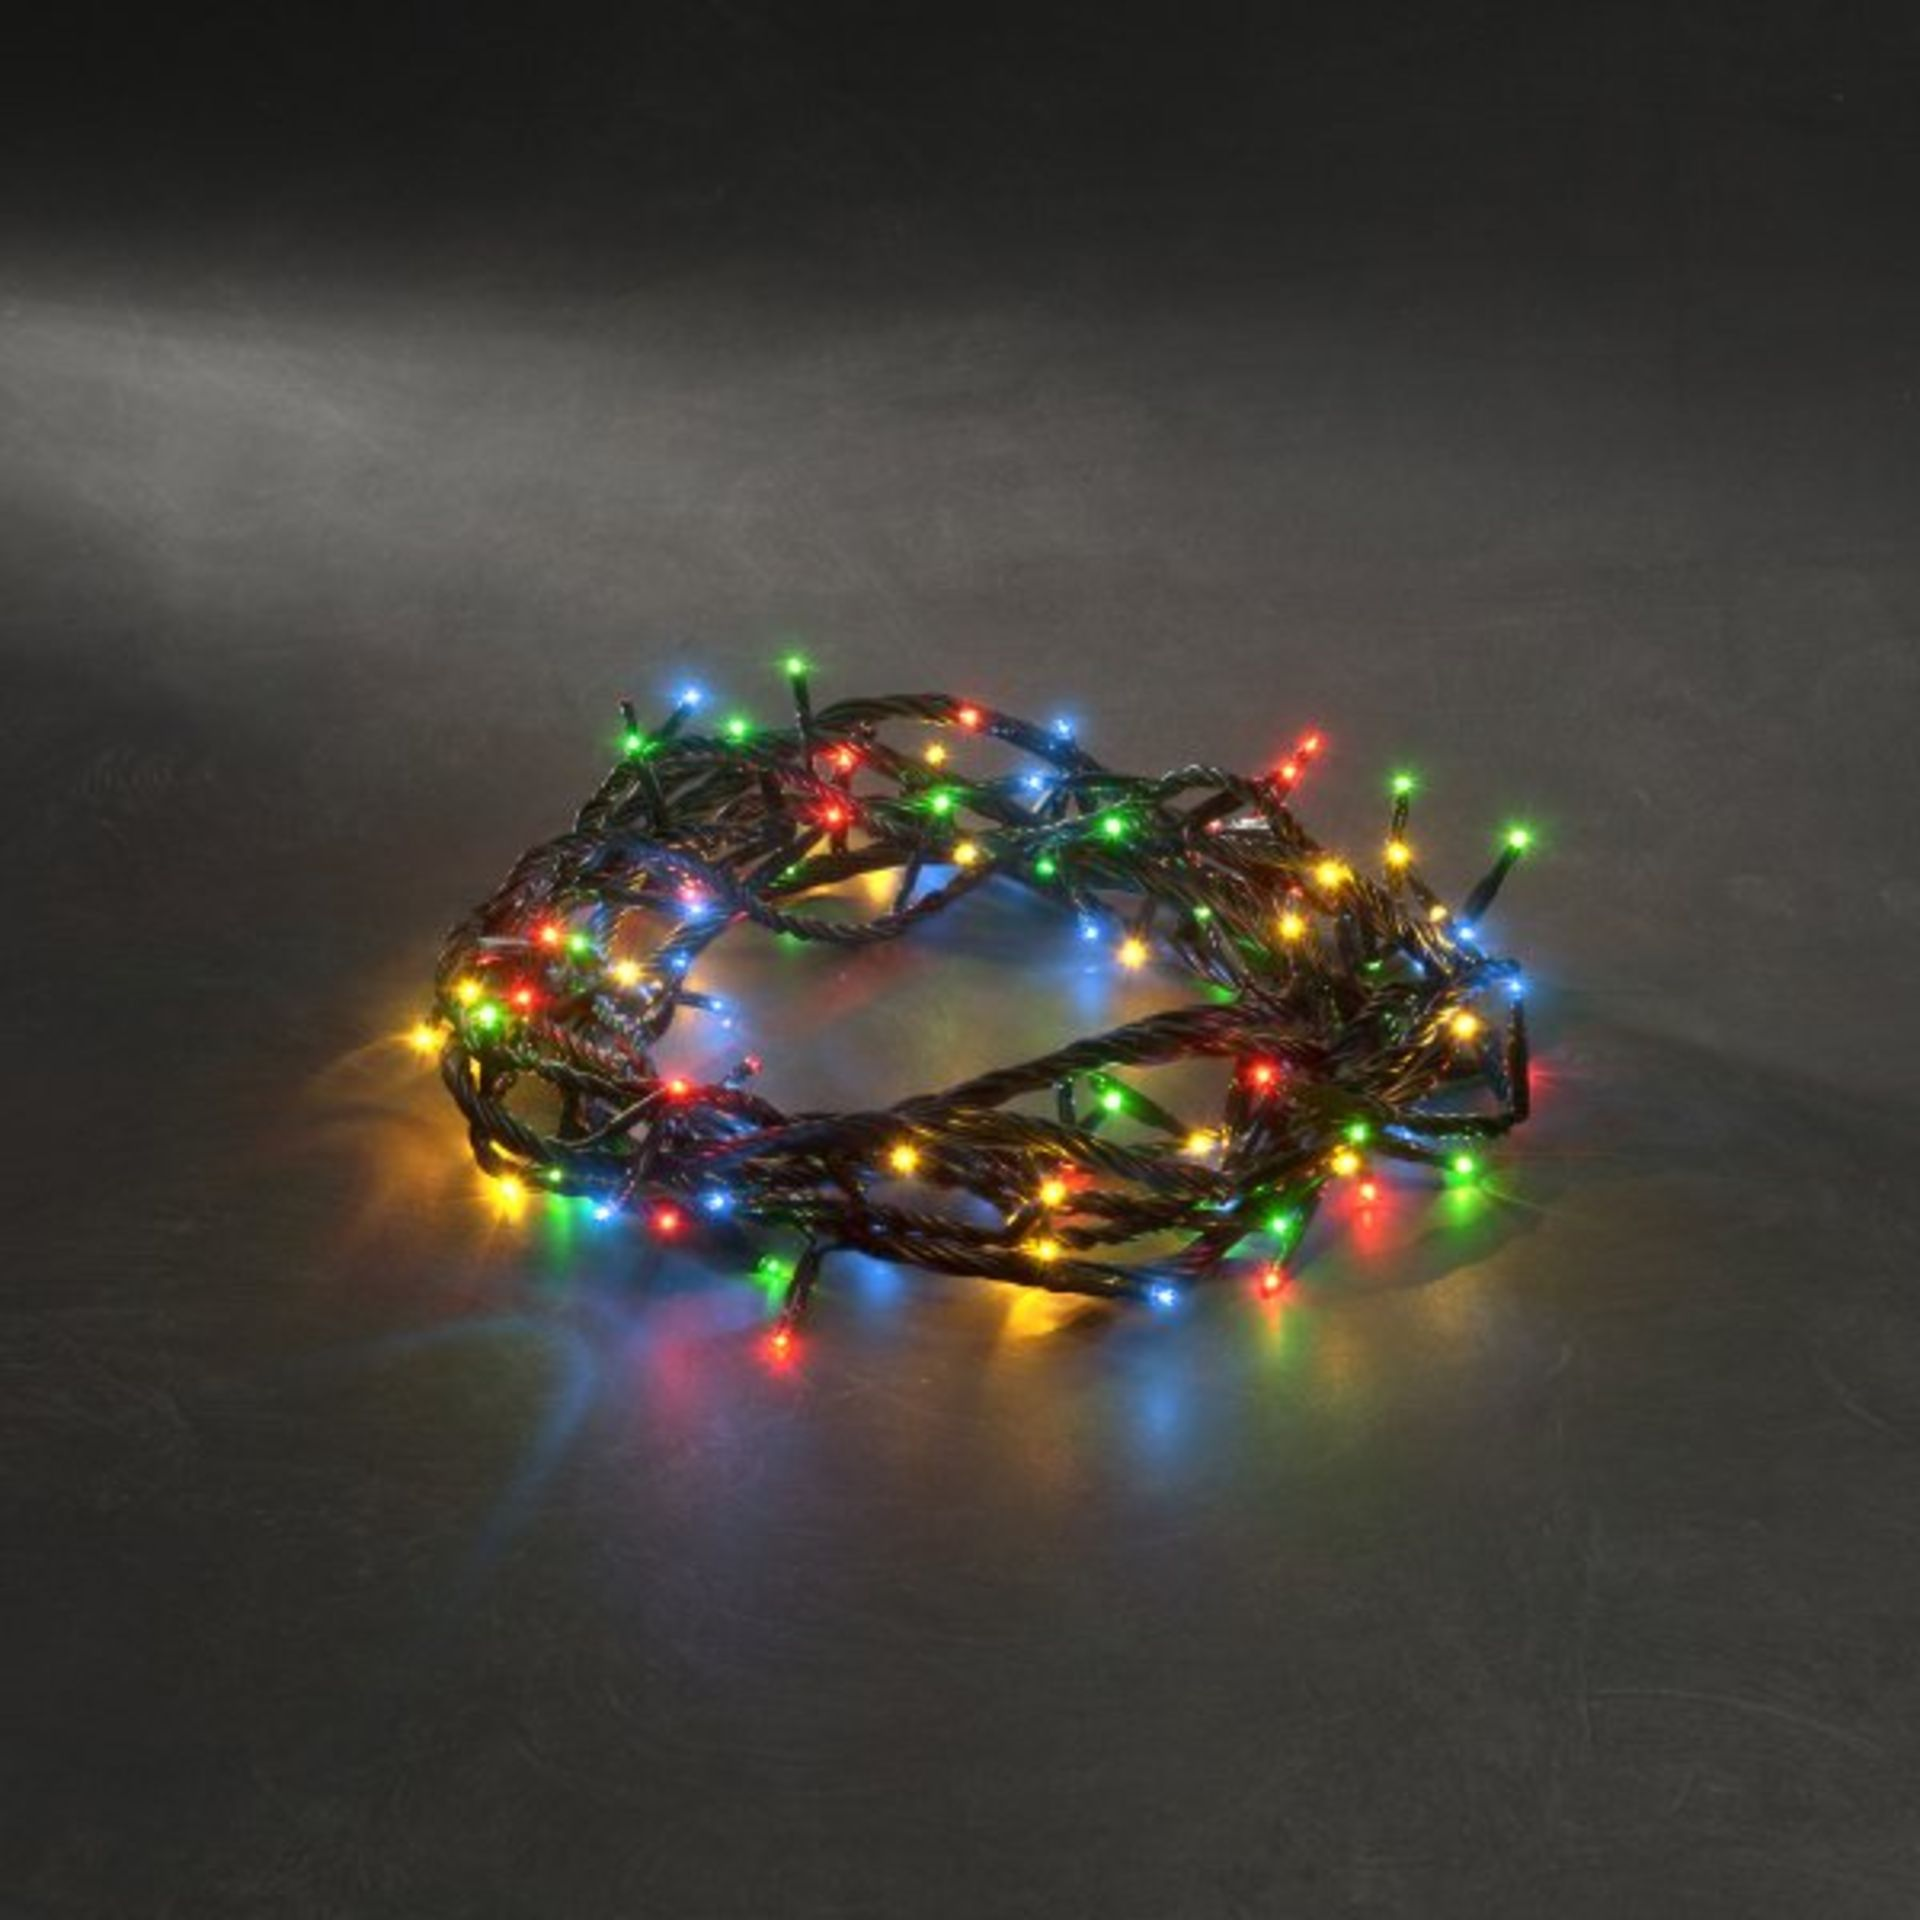 Lot 52600 - V Brand New 100 Multi Coloured Battery Operated LED Lights